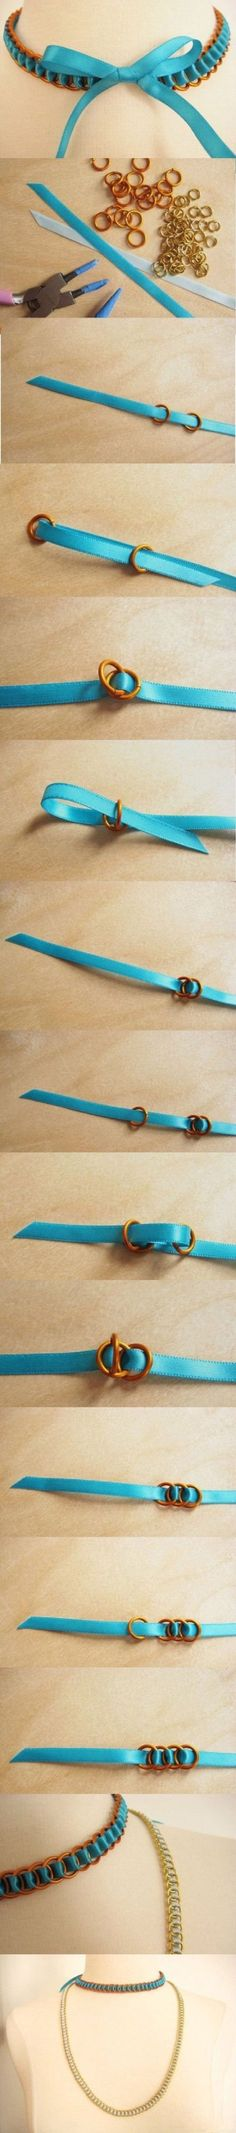 DIY Fashion Necklace